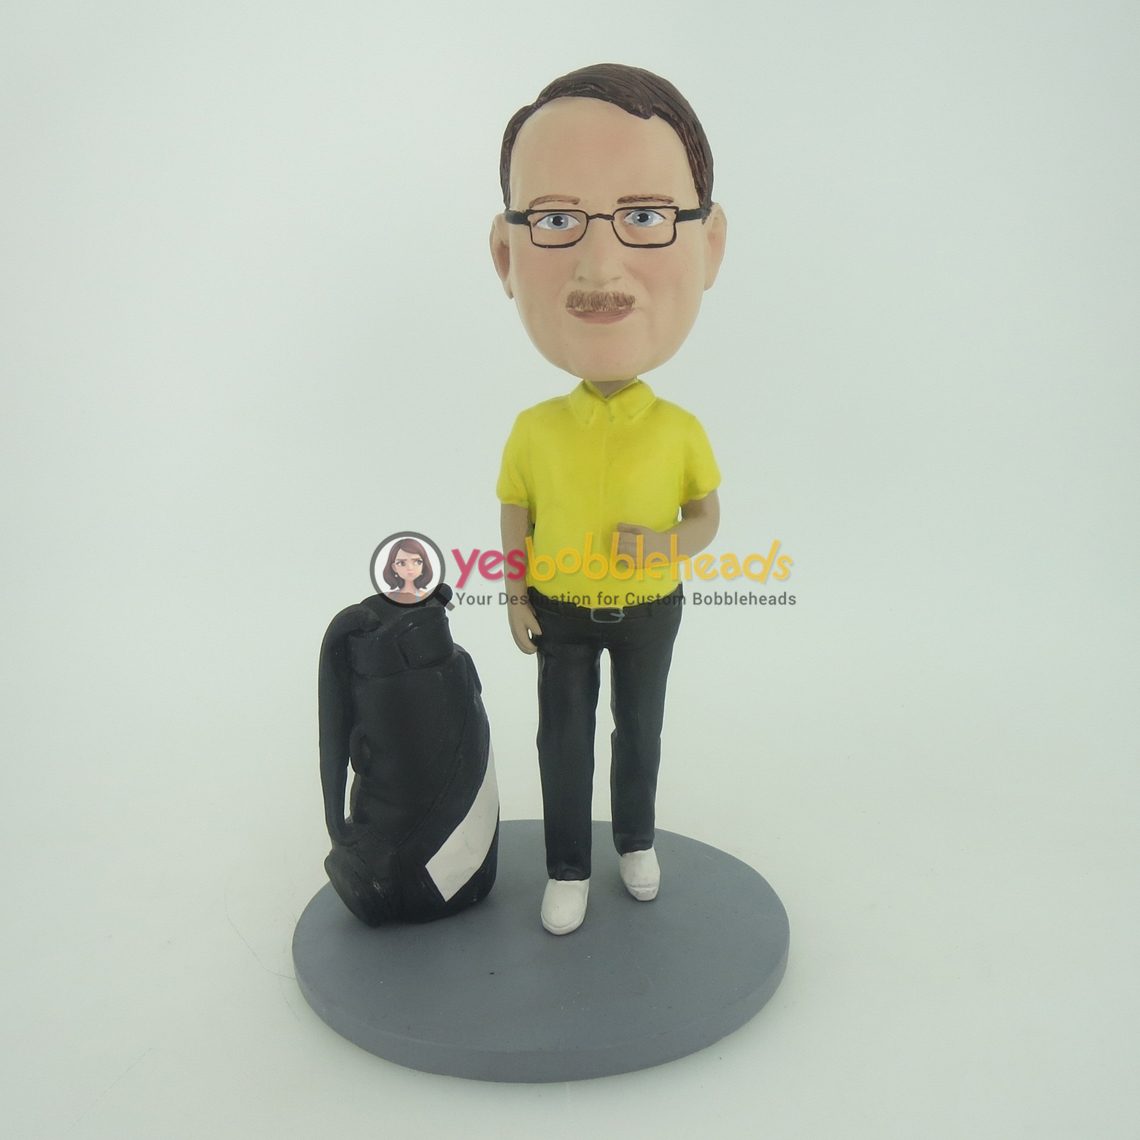 Picture of Custom Bobblehead Doll: Man And Golf Club